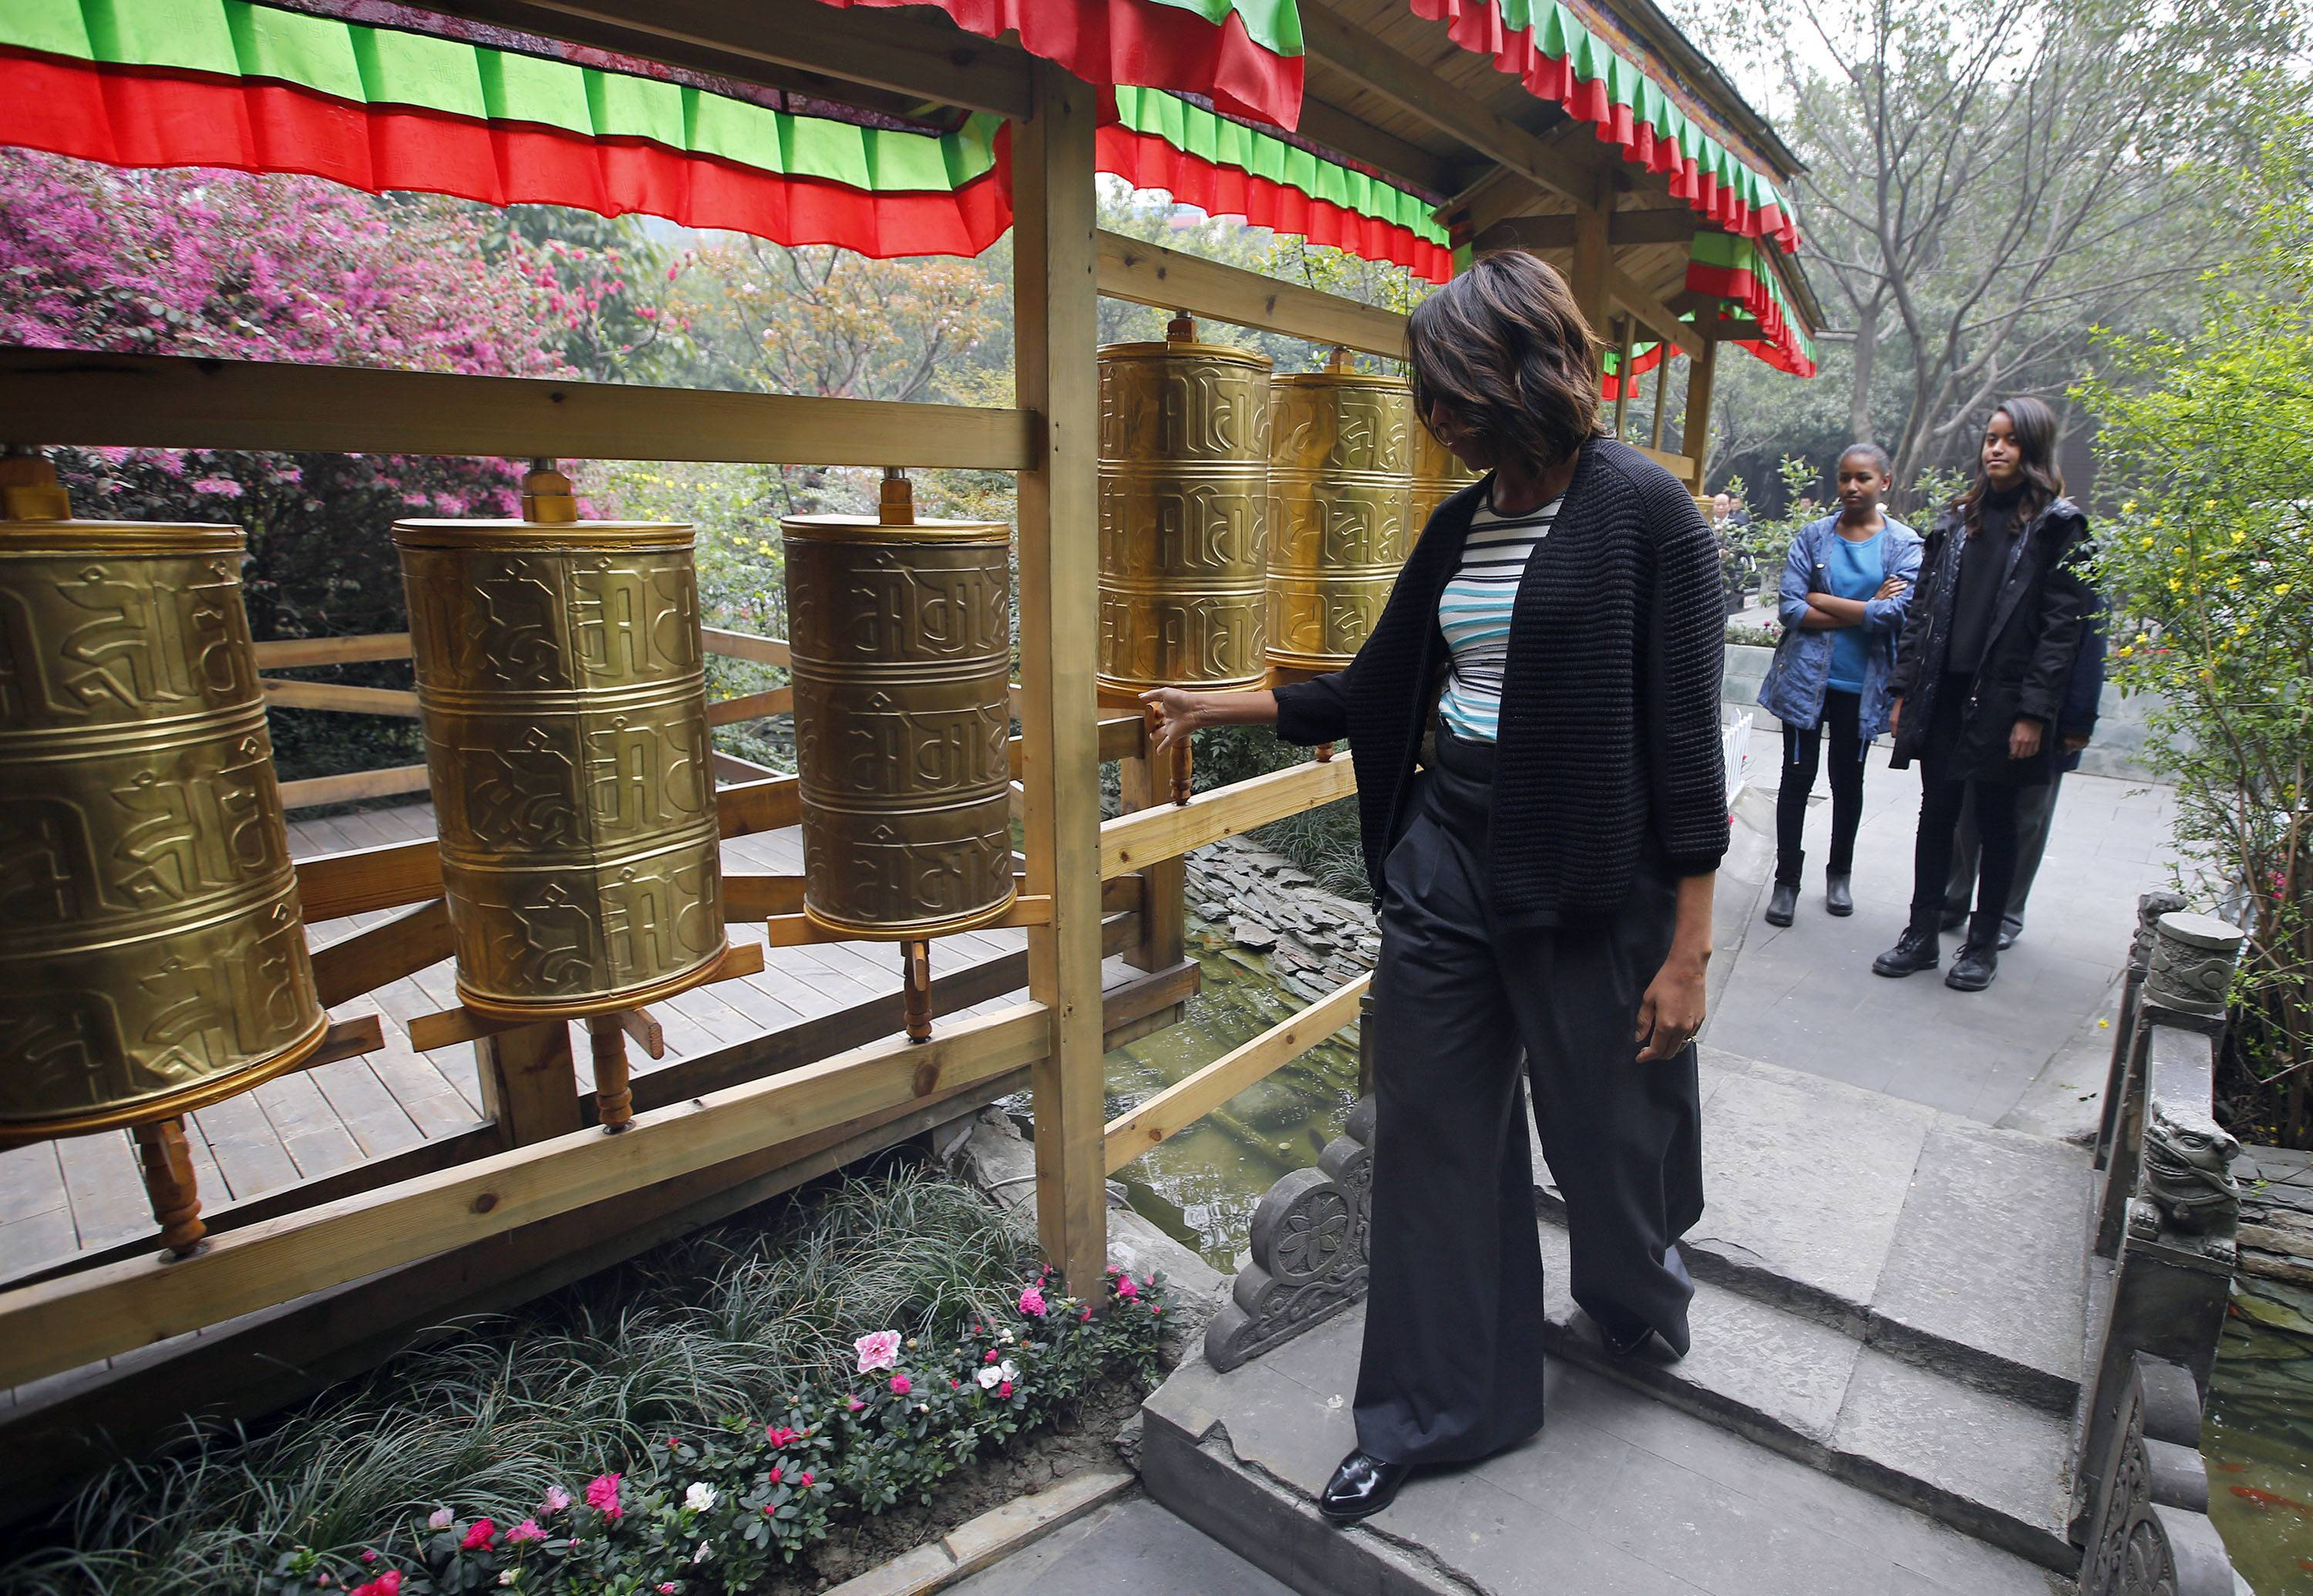 U.S. first lady Michelle Obama, left, touches Tibetan prayer wheels as her daughters Malia, right, and Sasha watch outside a Tibetan restaurant in Chengdu, Sichuan province, China Wednesday, March 26, 2014.